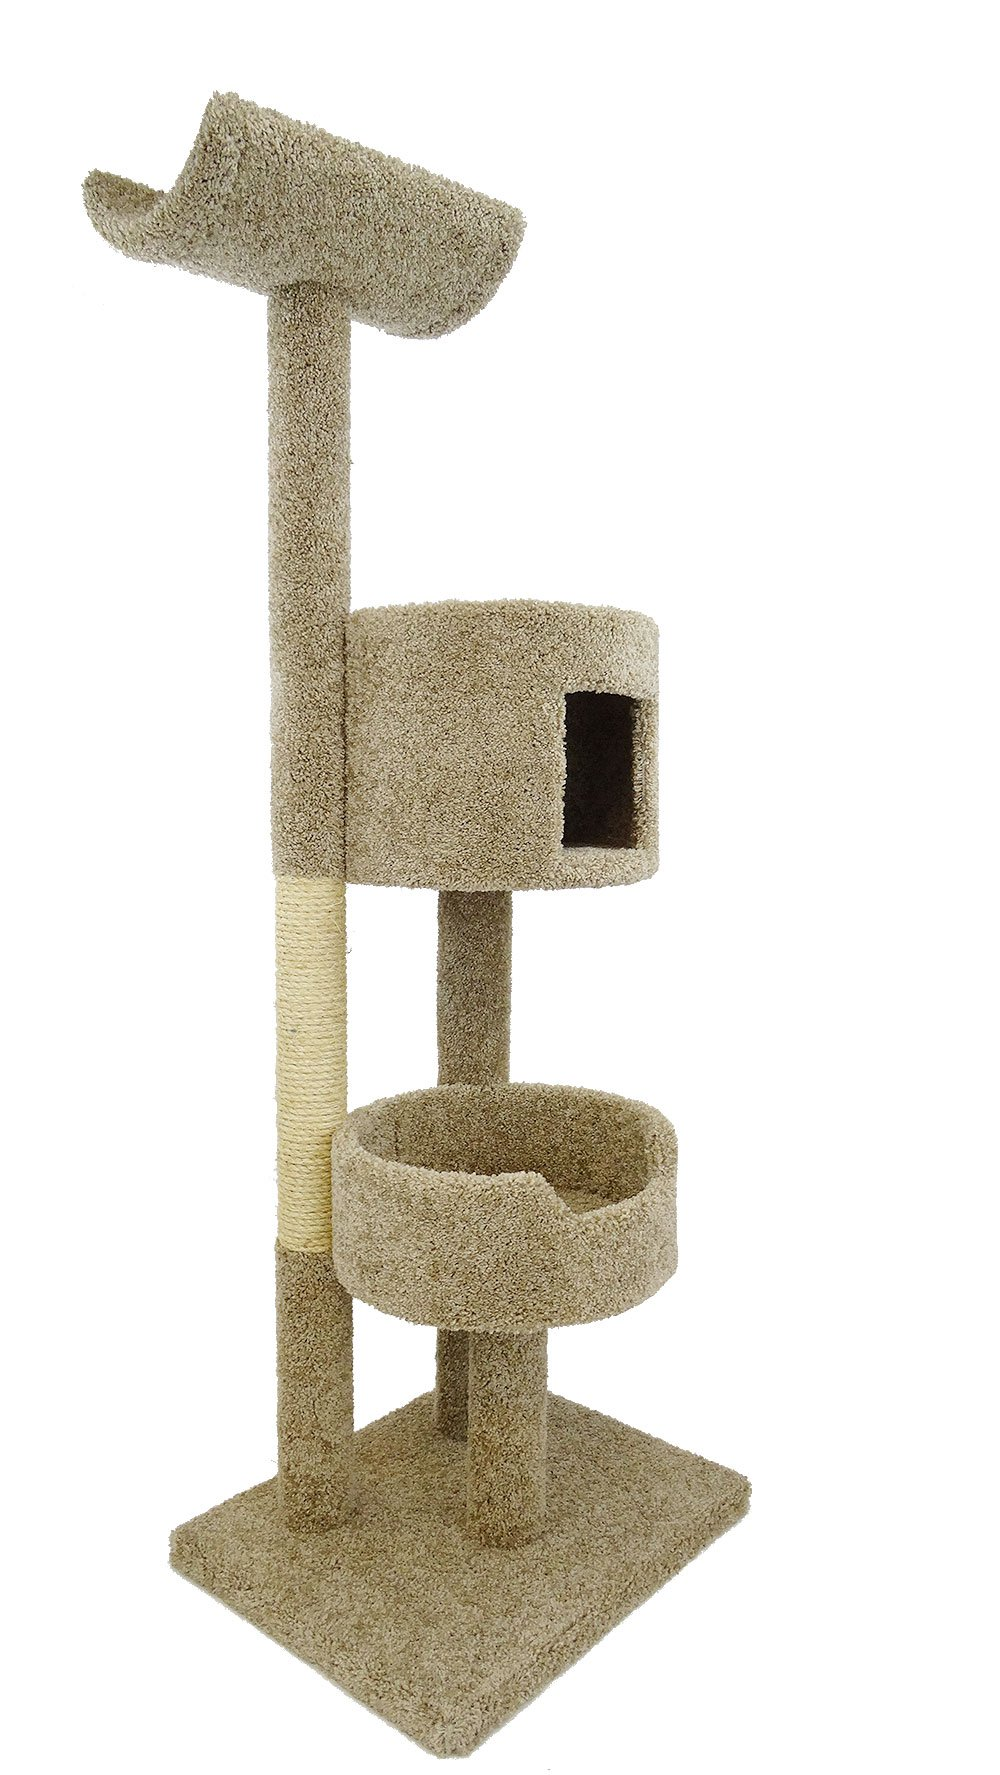 New Cat Condos 190117-Neutral Color Solid Wood Cat Tree Tower, Neutral, Large